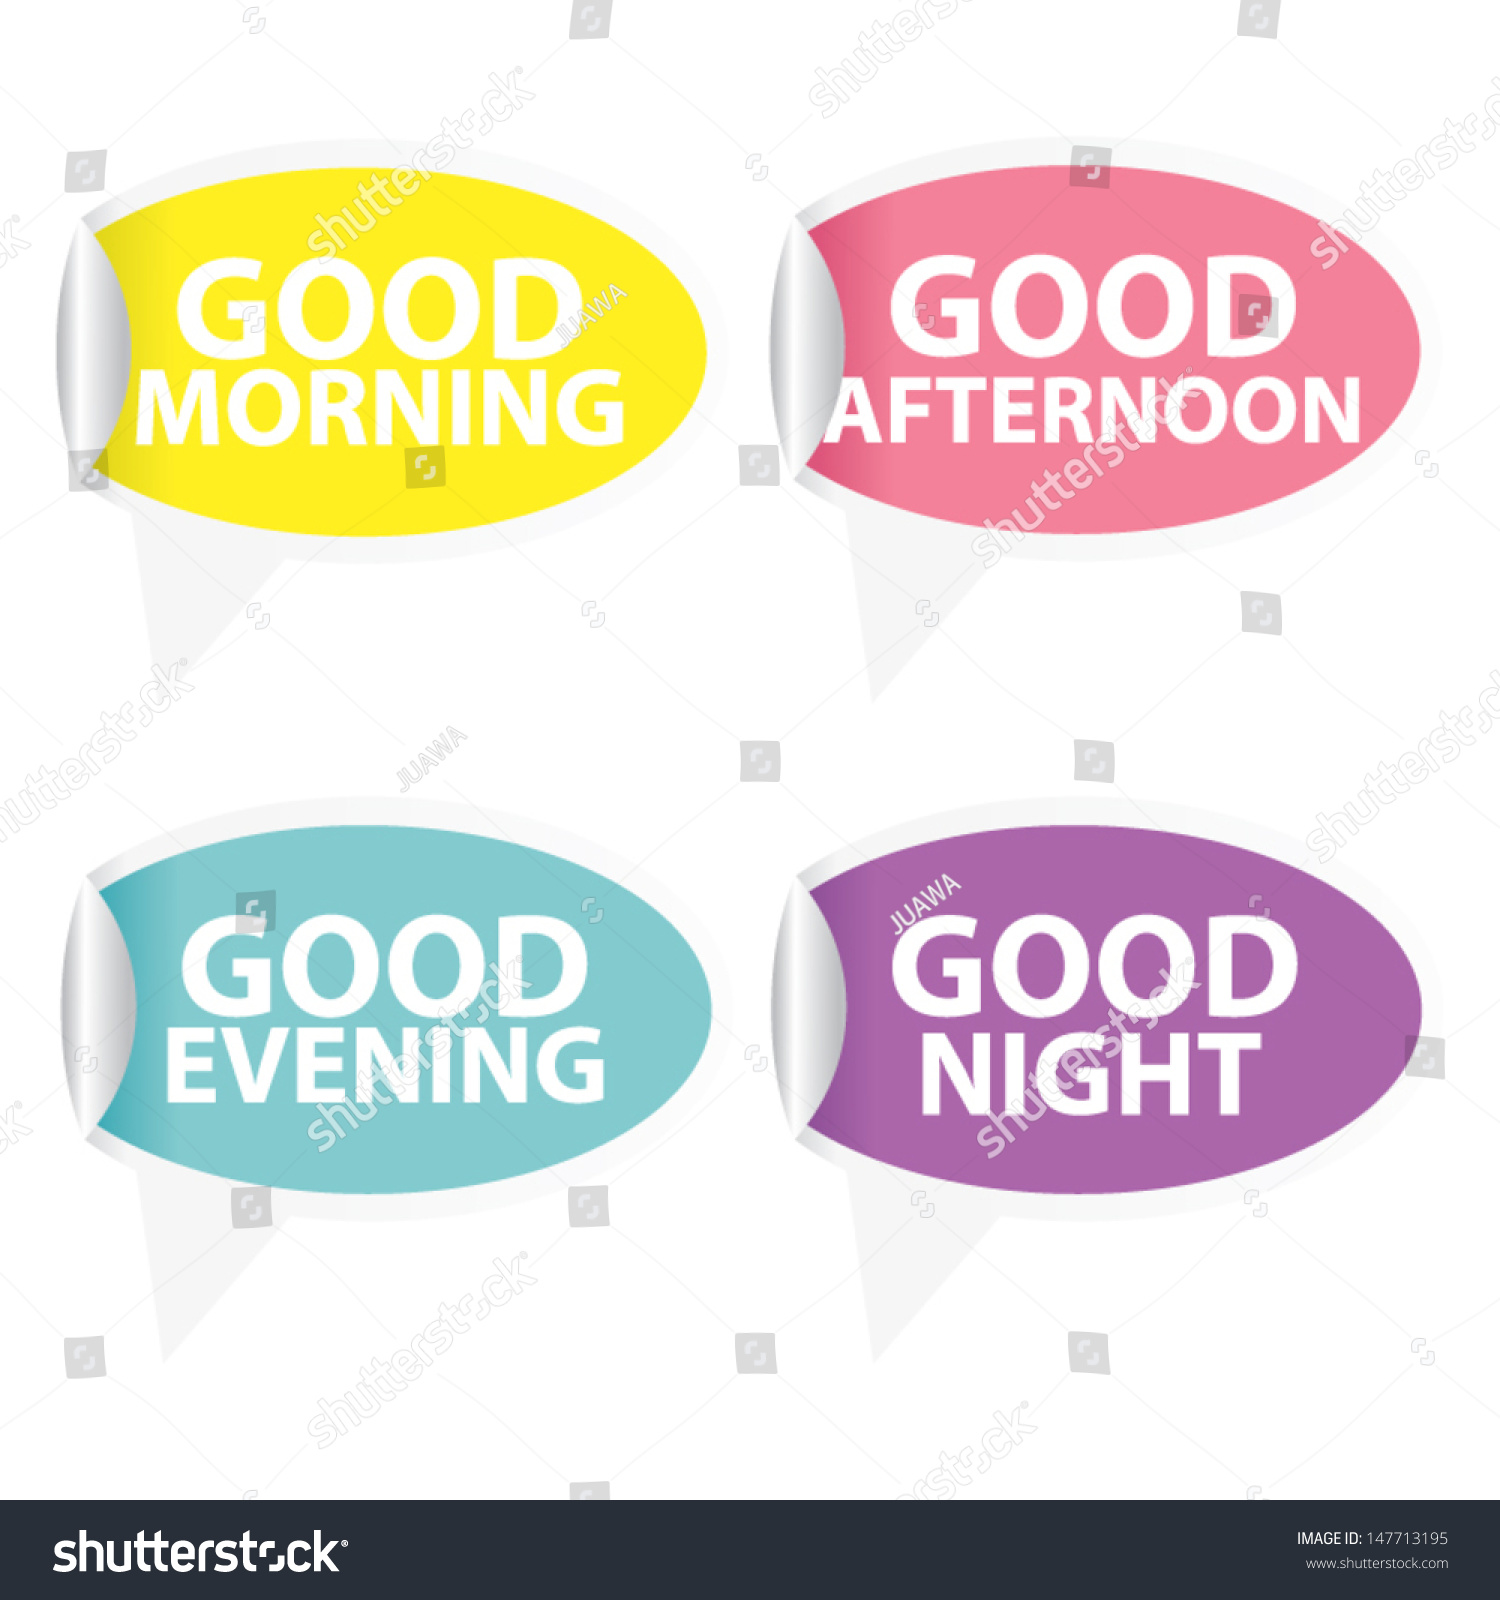 Good Morning And Goodnight In French : Pin by adid soul on pinterest